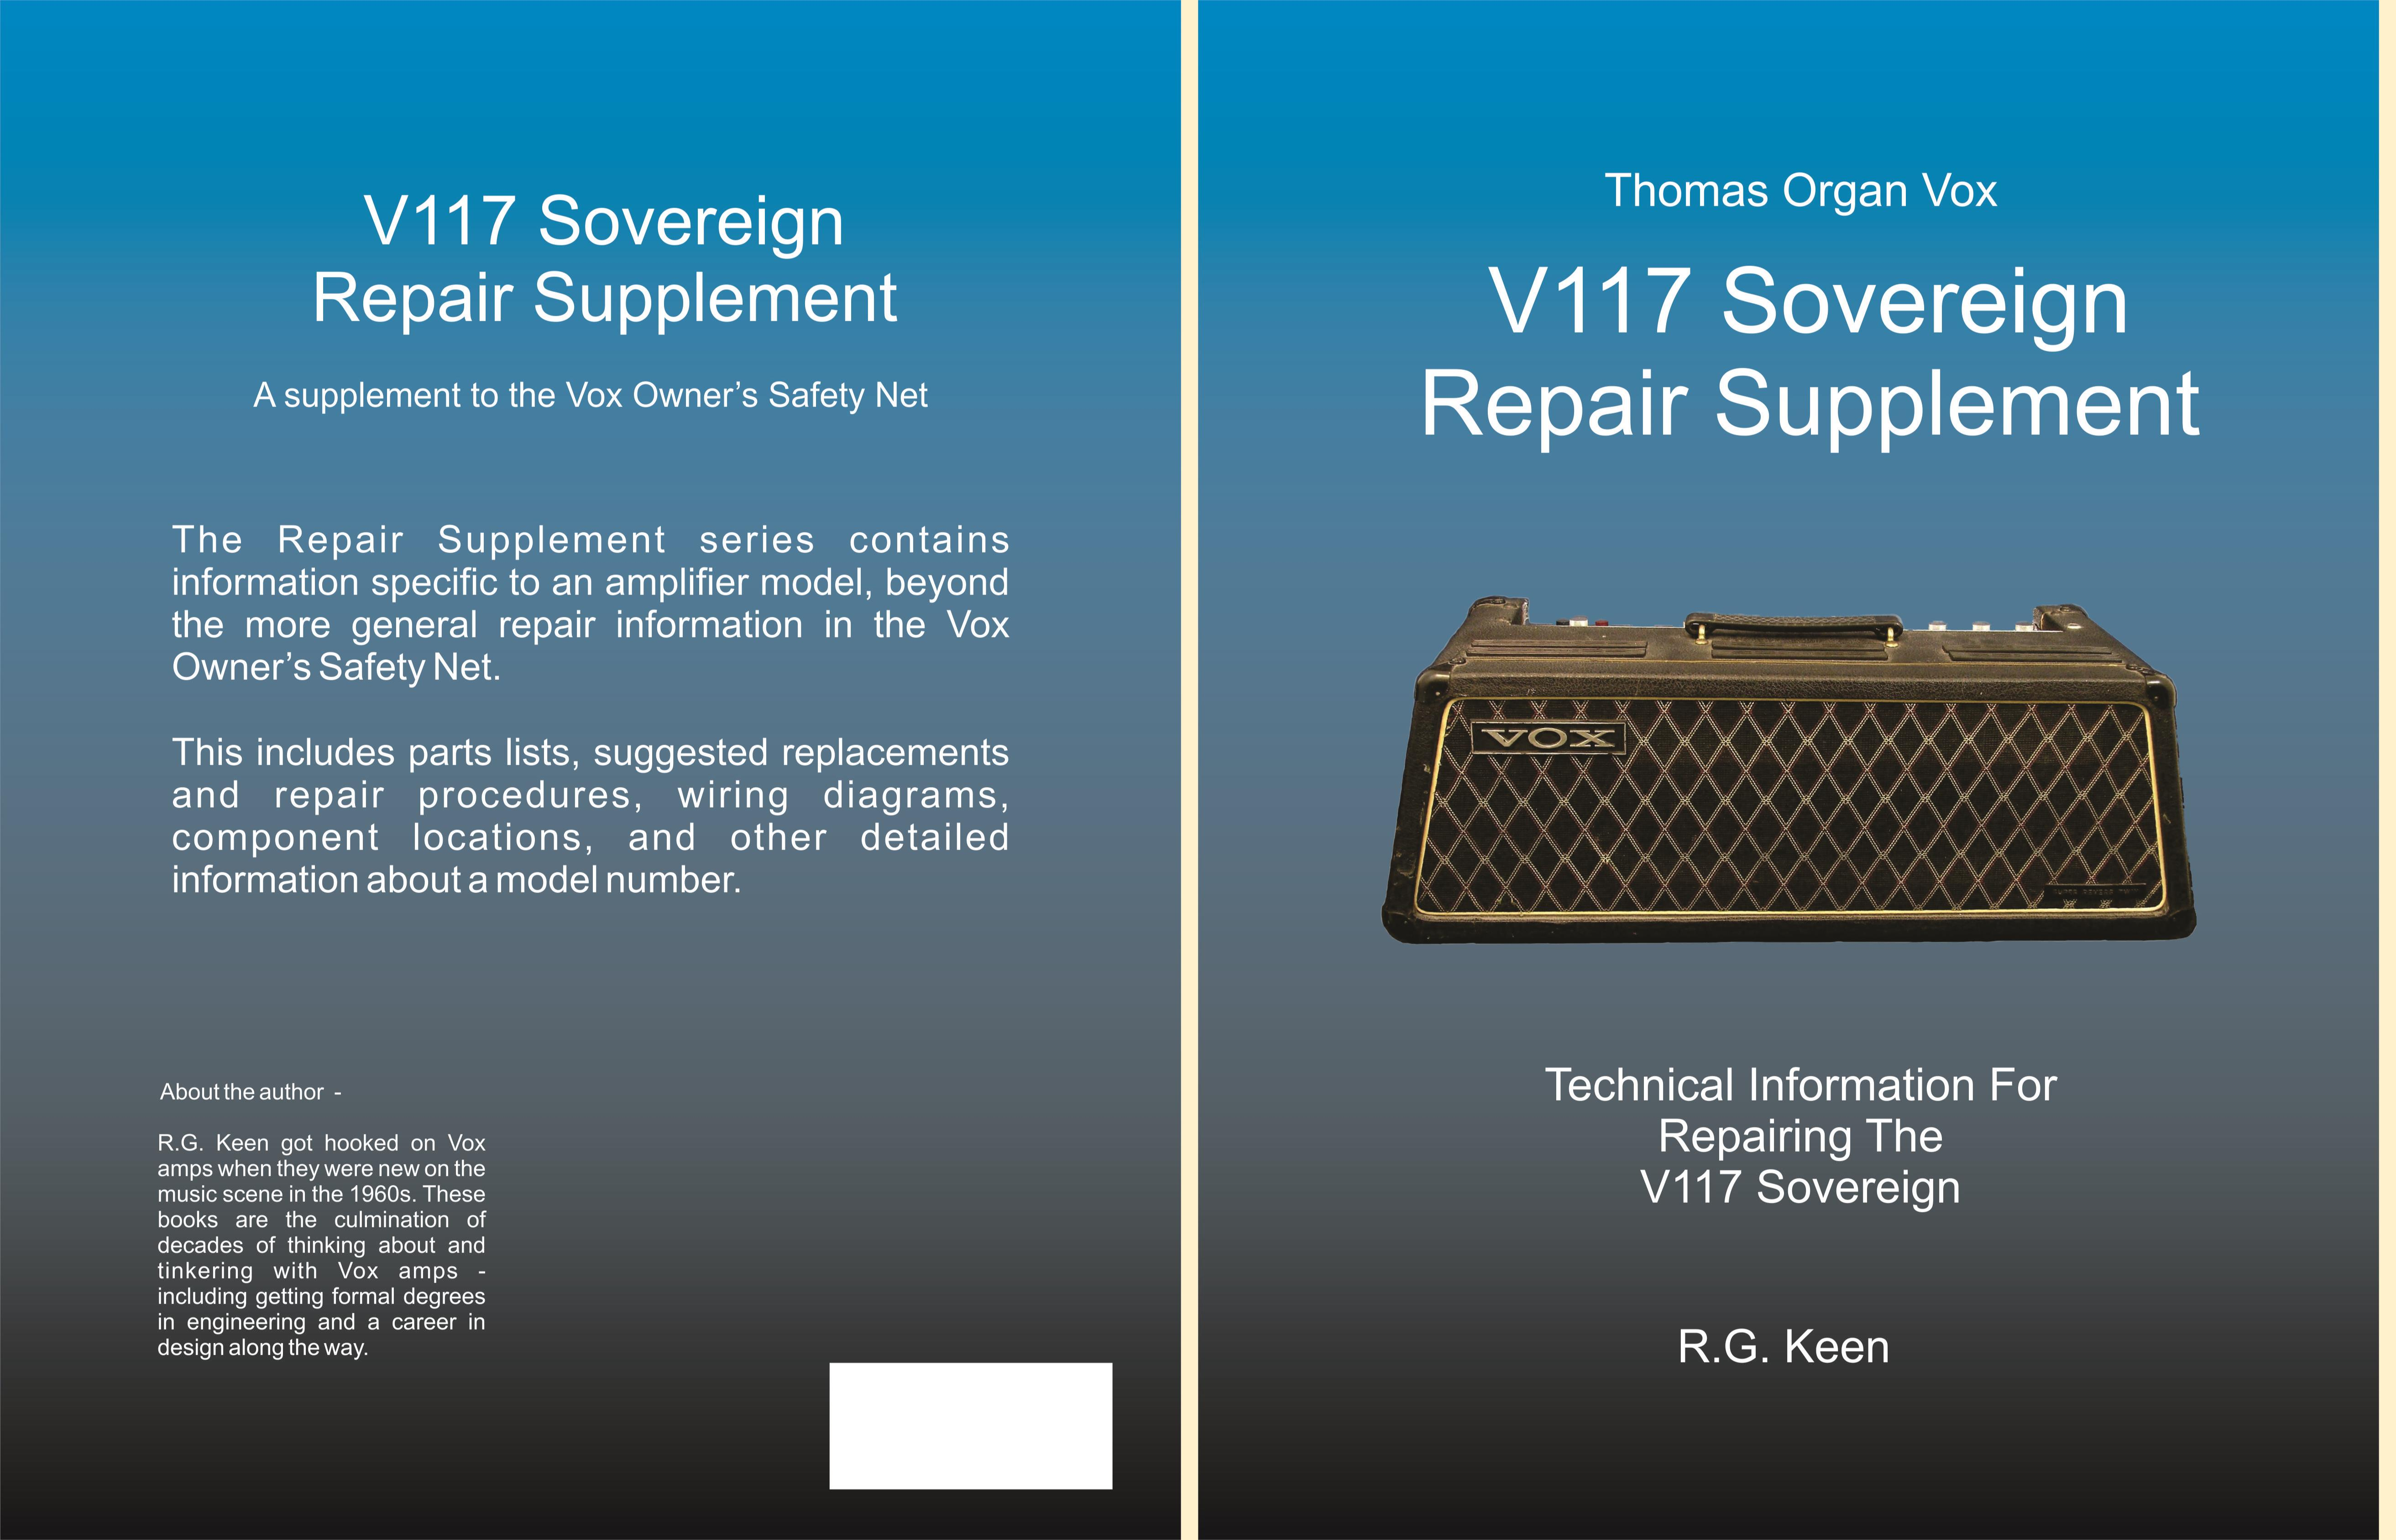 V117 Sovereign Repair Supplement cover image